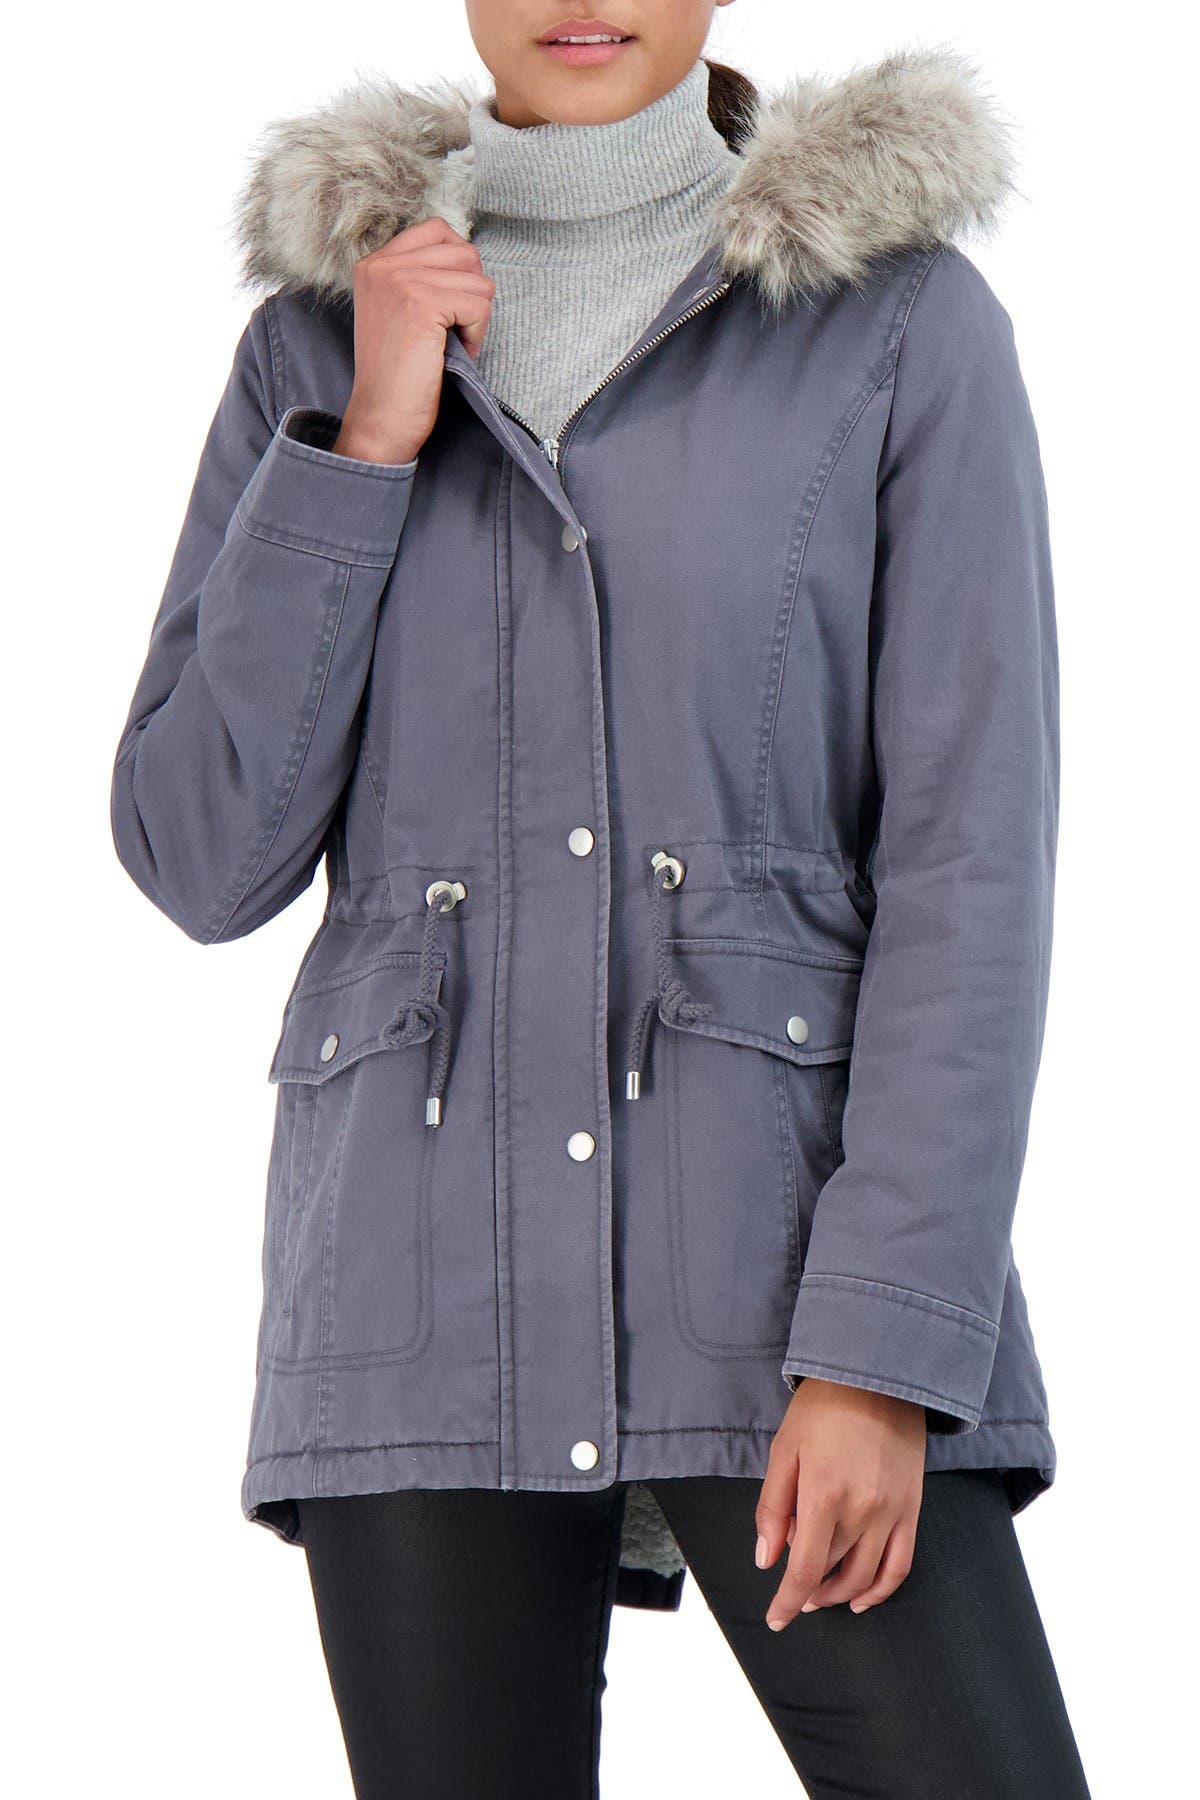 Image of Sebby Cotton Faux Fur Lined Parka